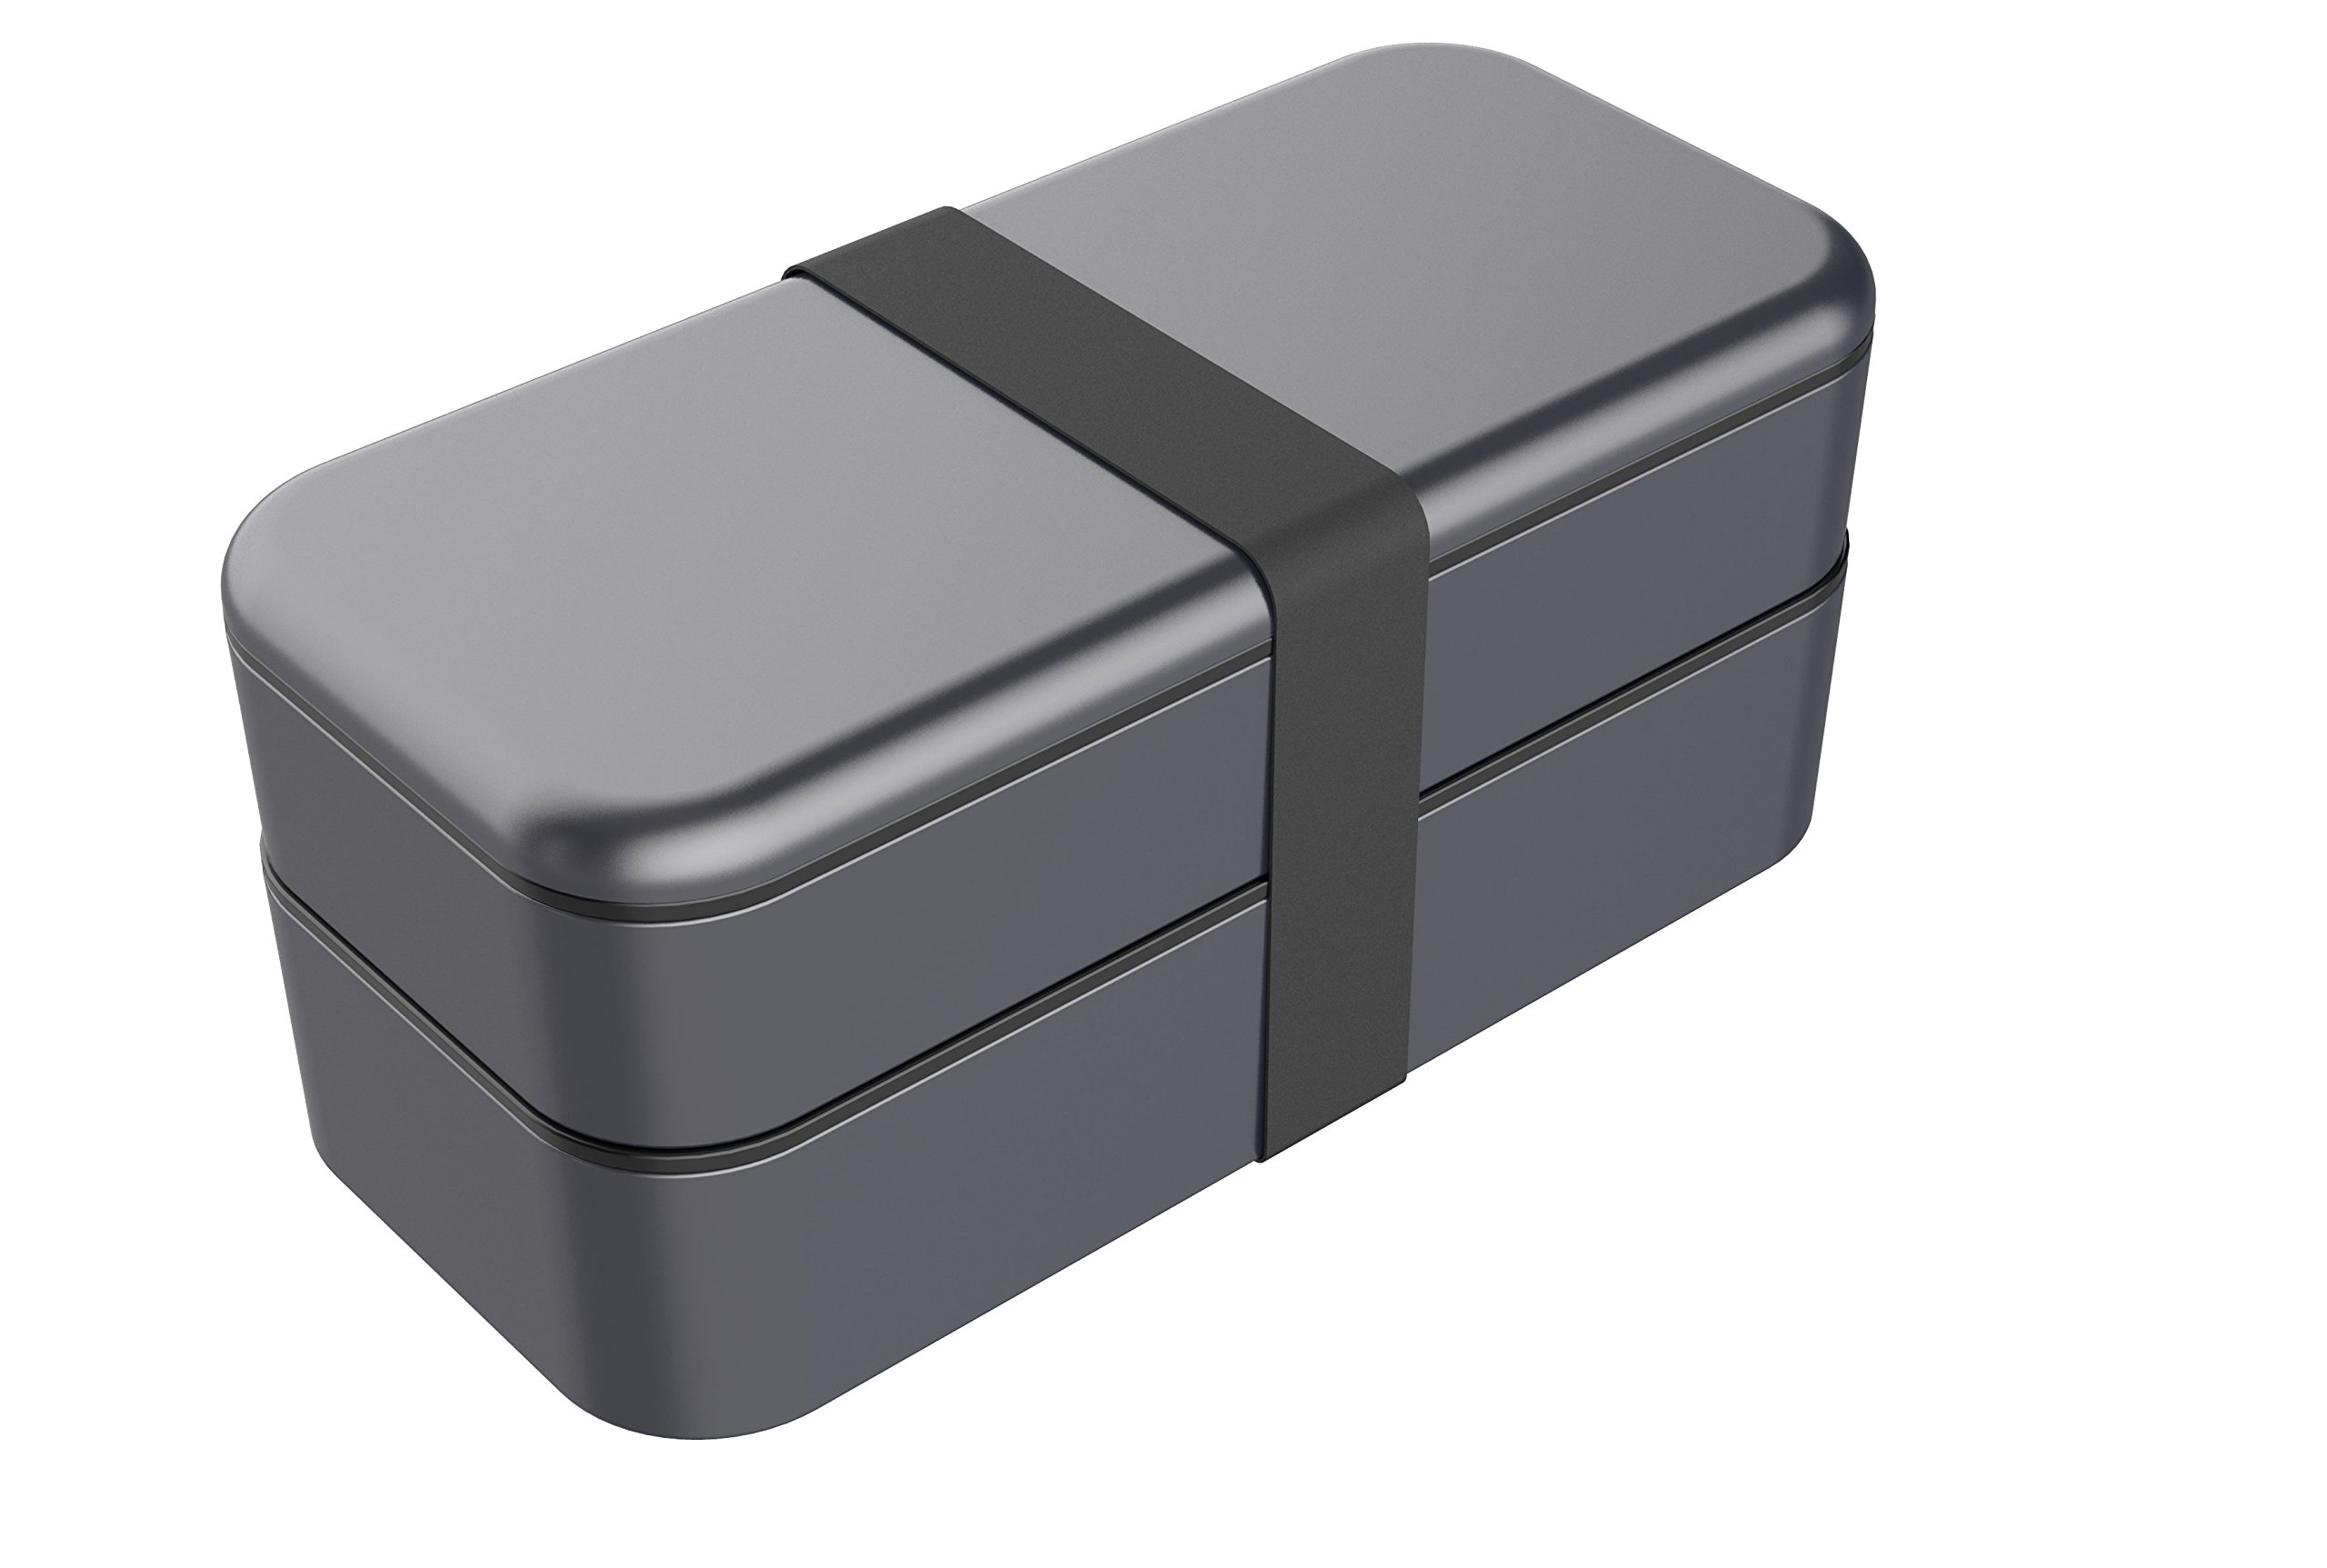 Function101 BentoStack Organizer - Compatible with Apple Products and Accessories - Space Gray